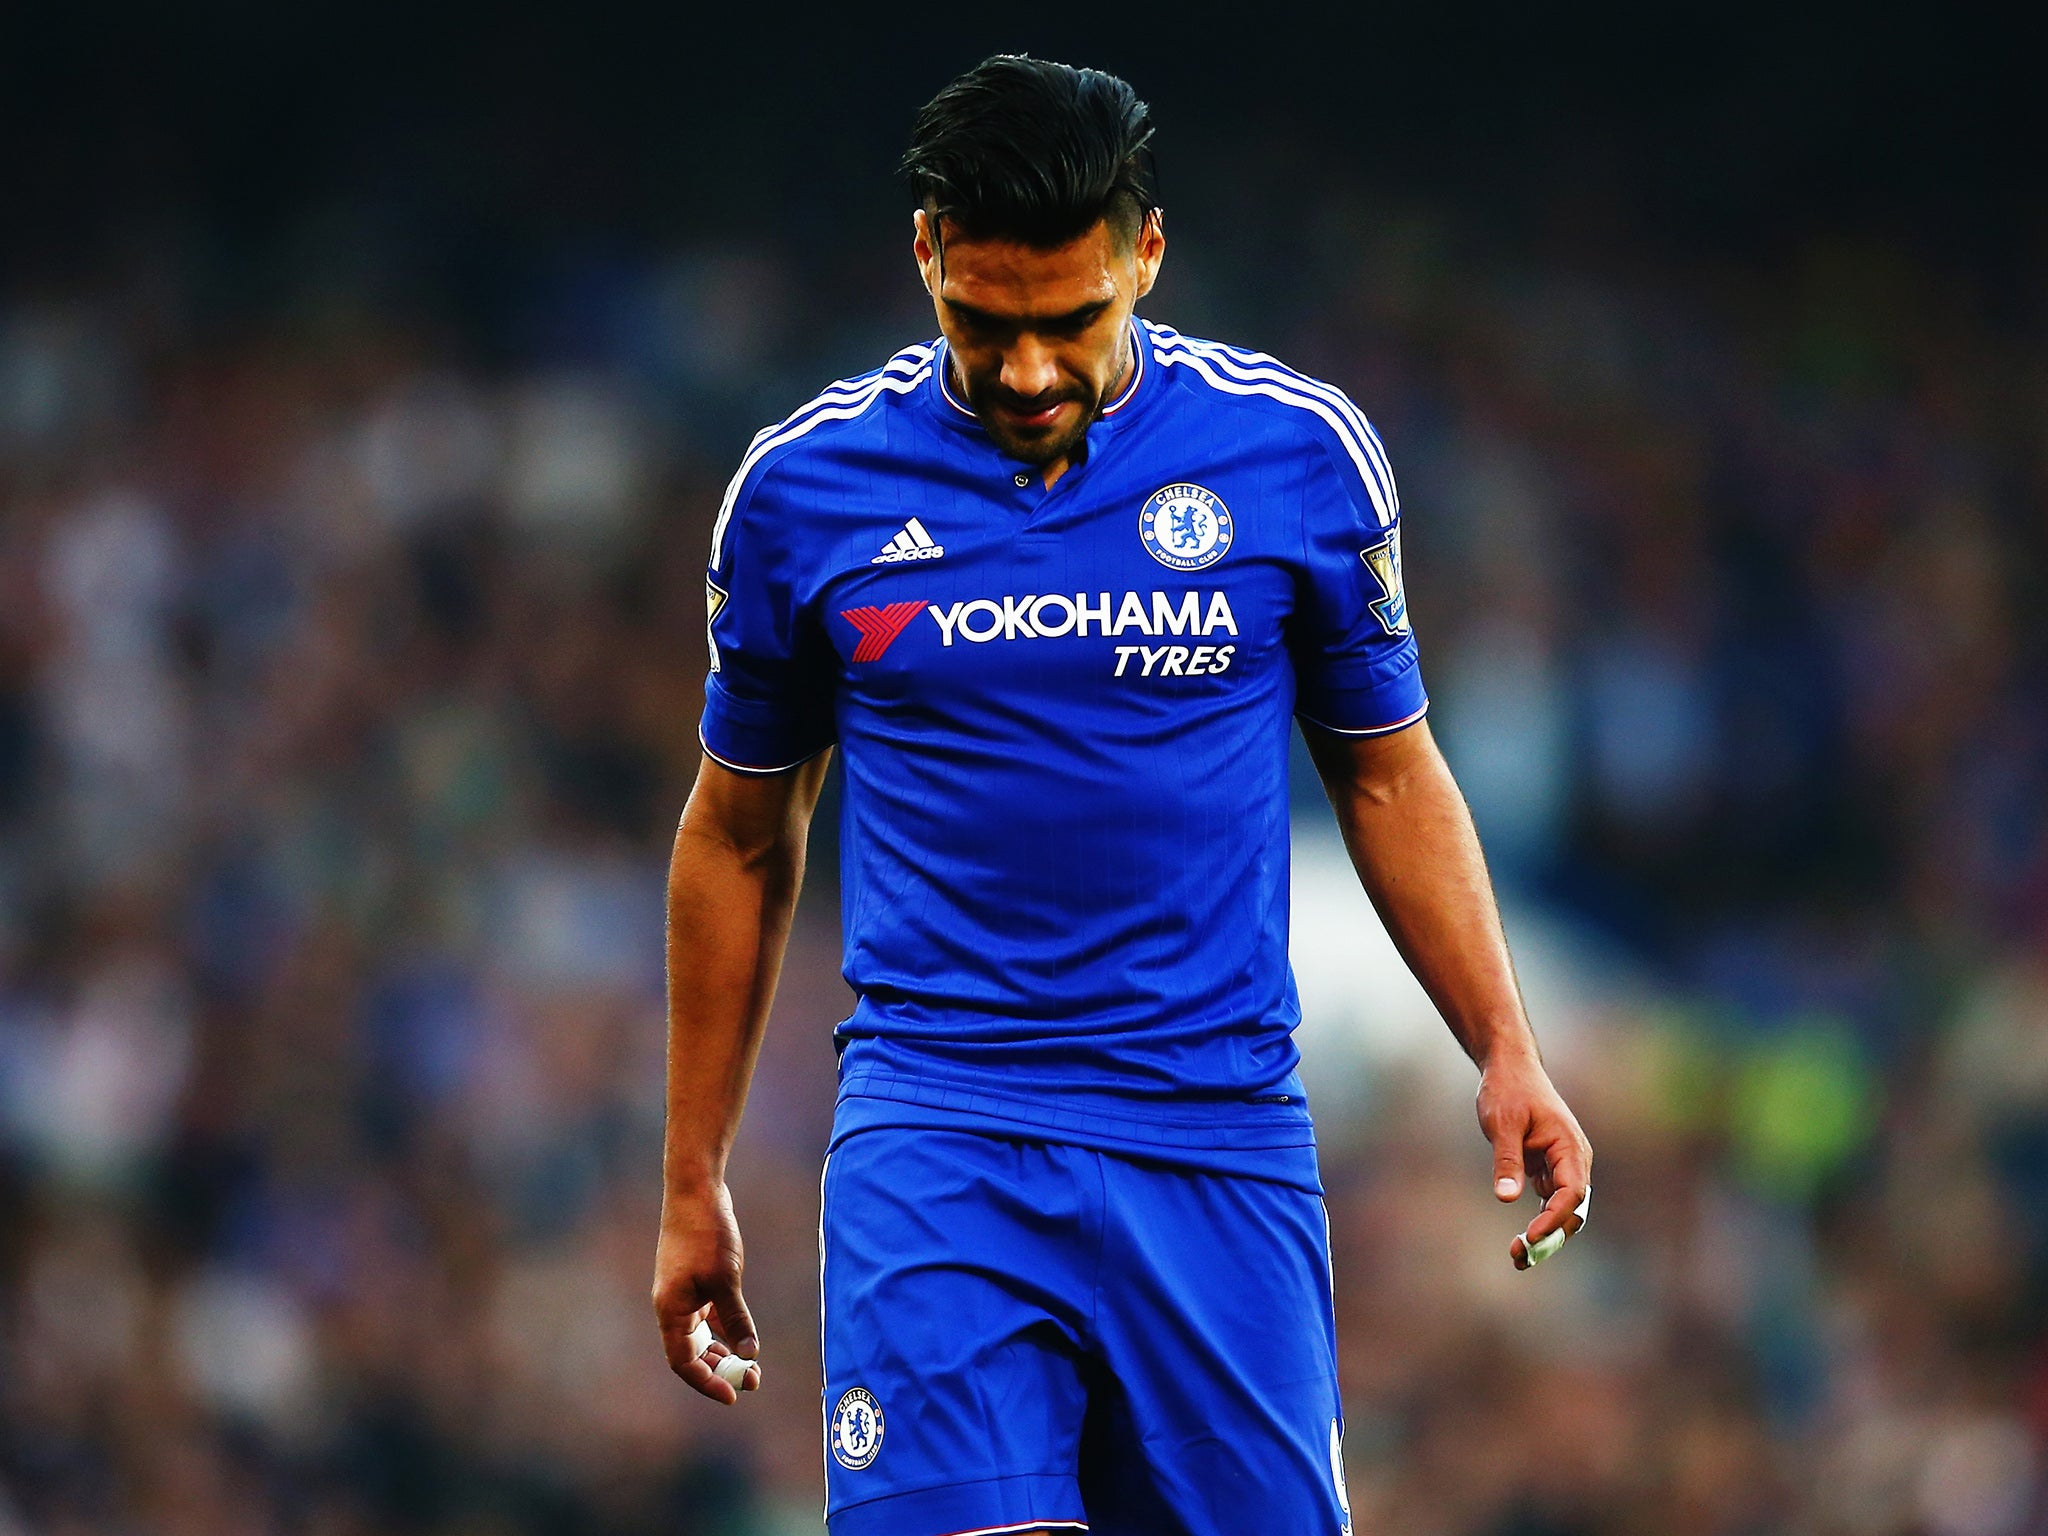 Radamel Falcao to leave Chelsea: Striker set to end woeful Blues spell by joining Valencia in January